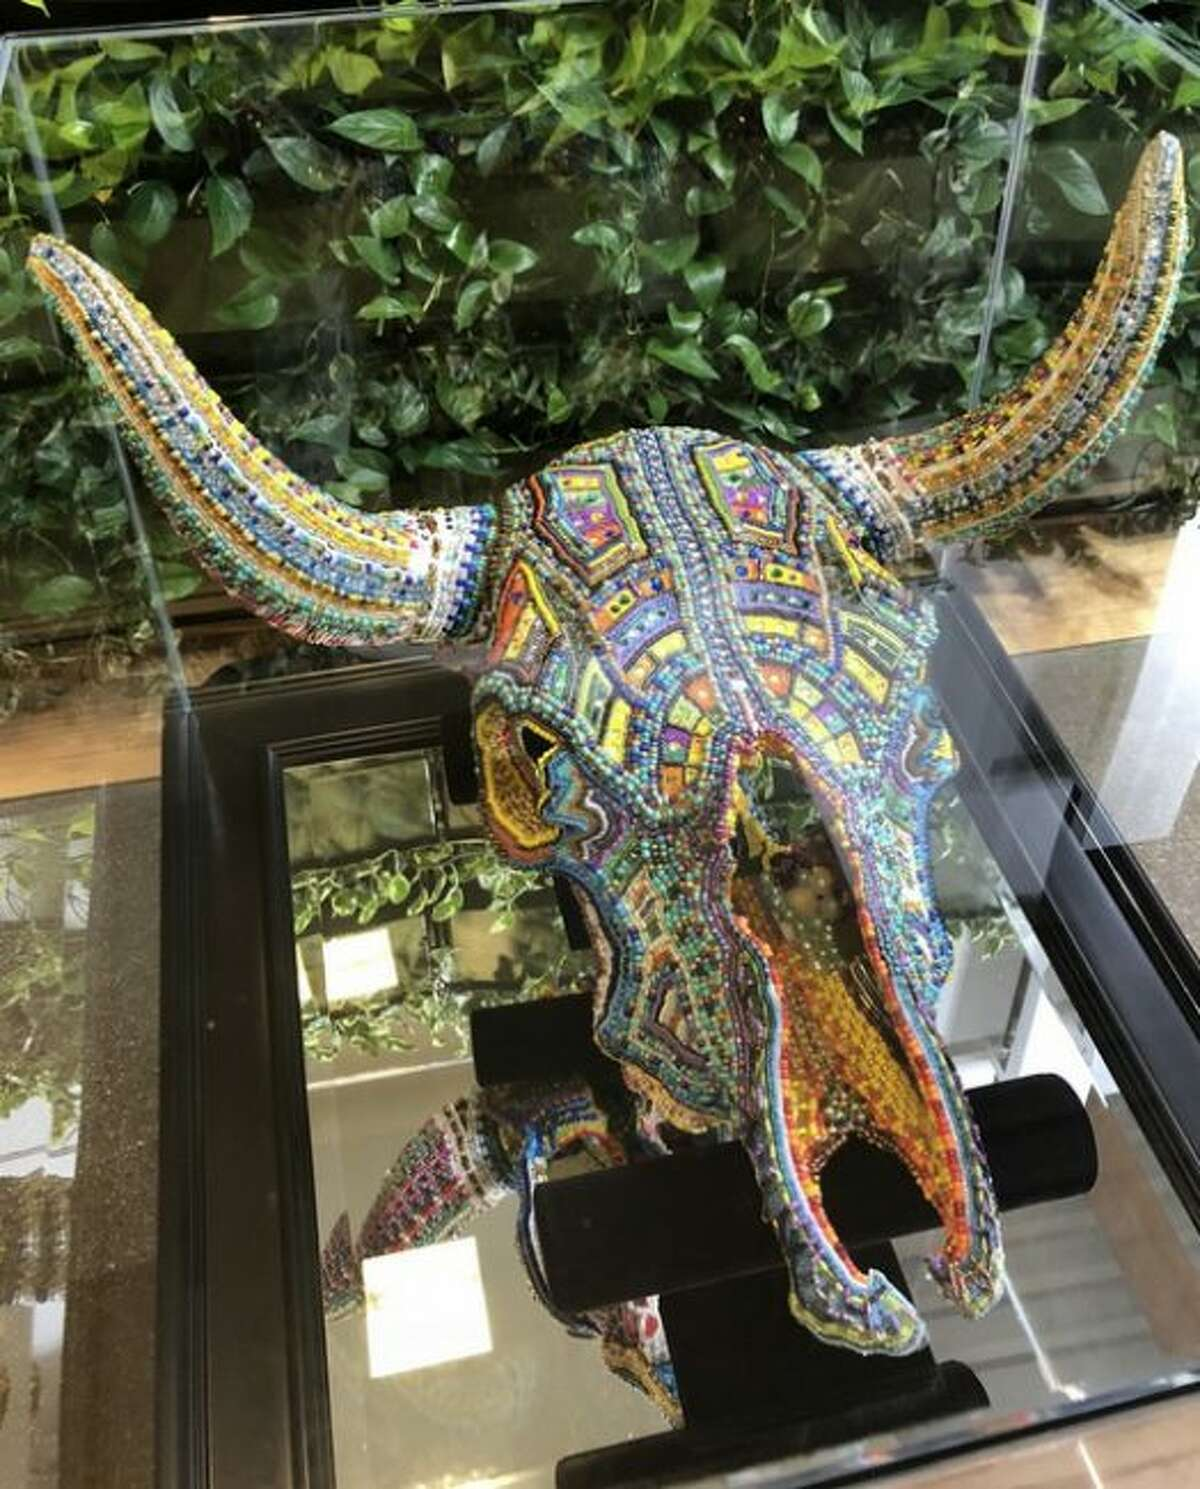 David Watson's Hand Beaded Cow Skull was on display during the 2018 ArtPrize. Project 1 is a new event set up by officials on opposite years of the competition. (Courtesy photo)